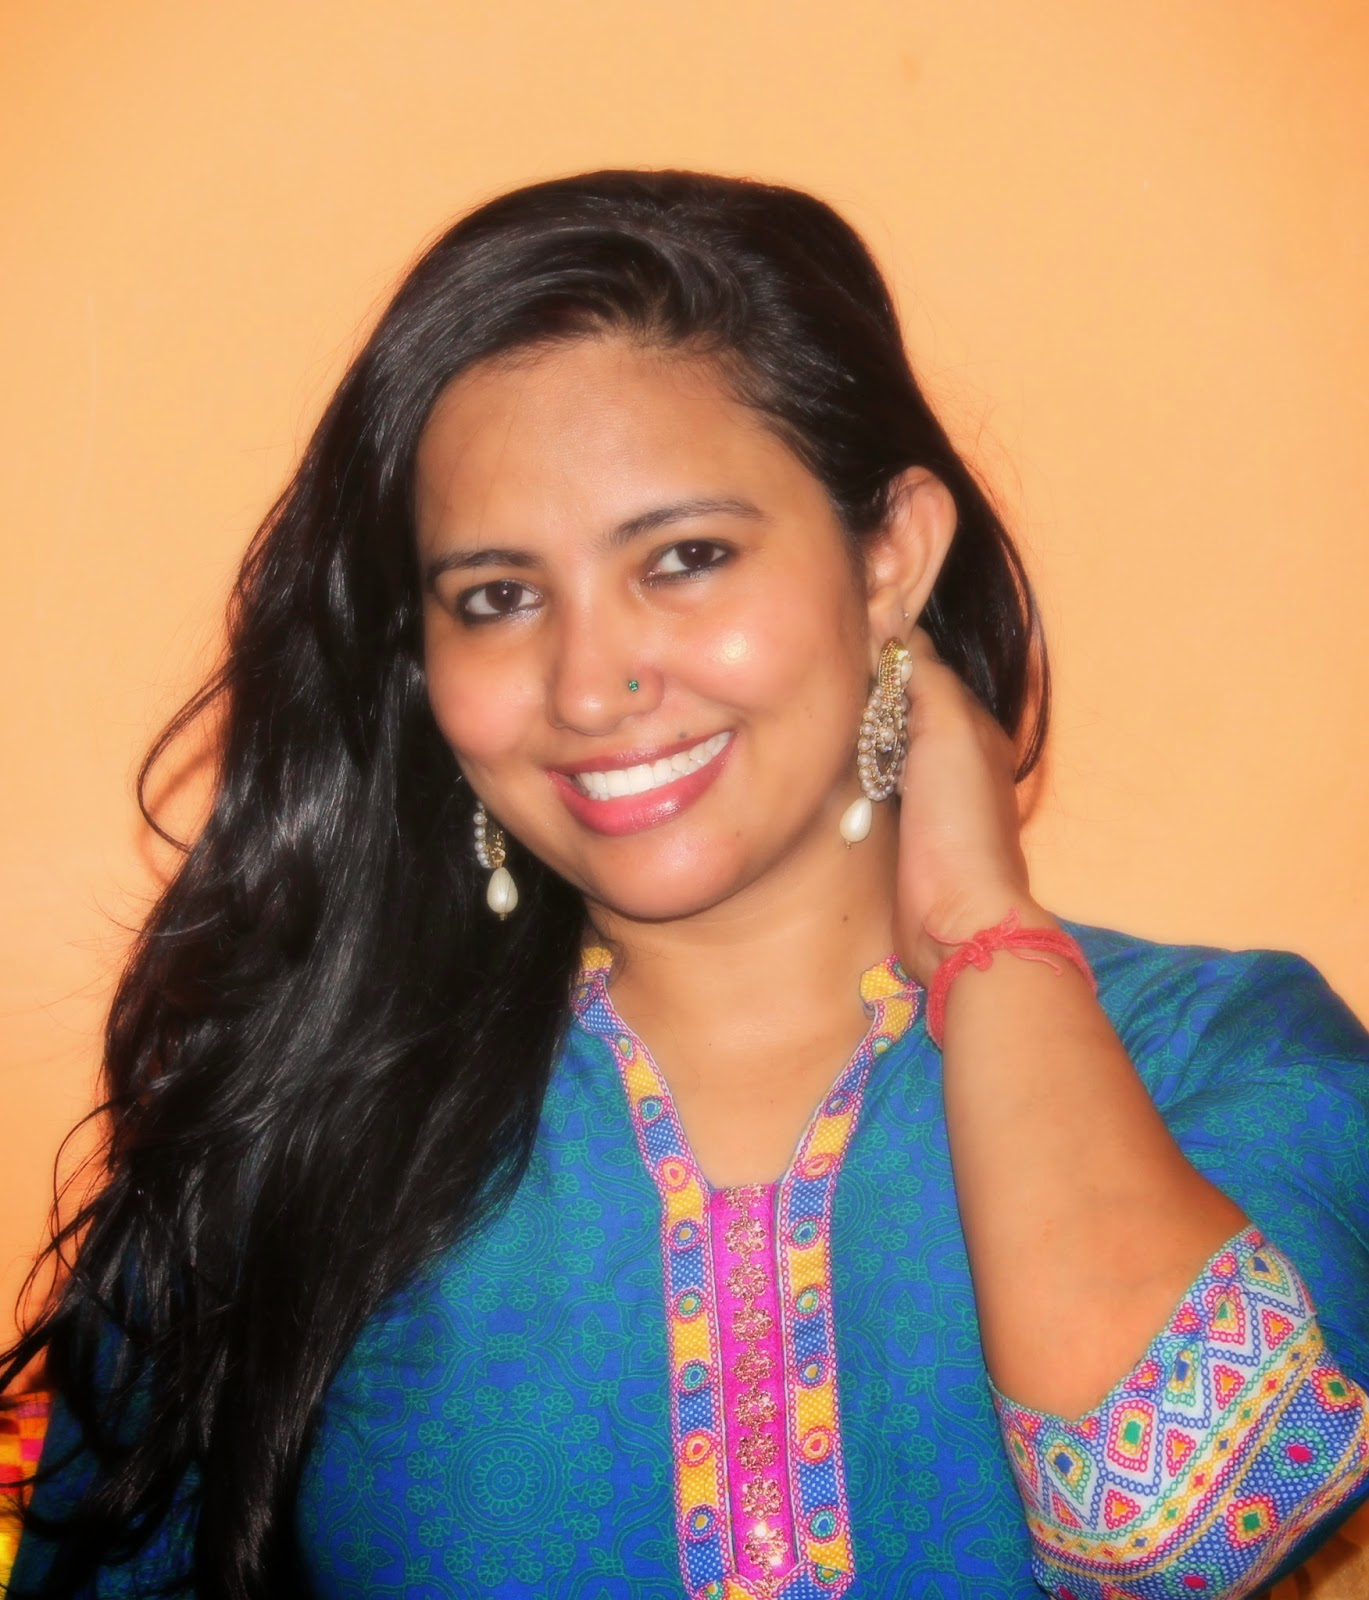 Indian Ethnic Look With Aurelia and W for Woman